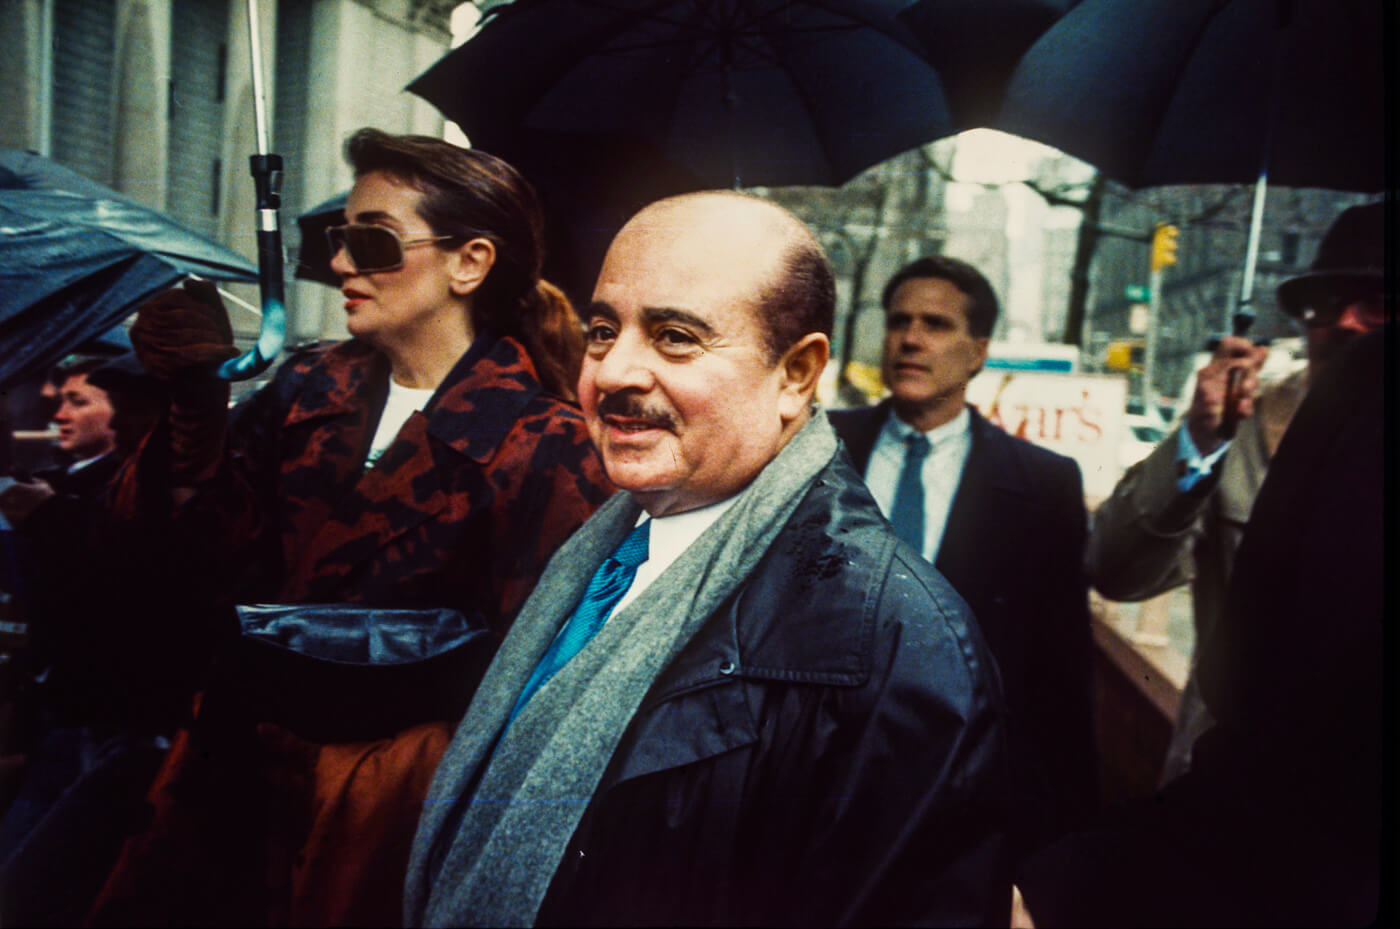 Saudi arms deale Adnan Khashoggi arrives at Manhatten Federal Court, New York, April 4, 1990. Photo | AP